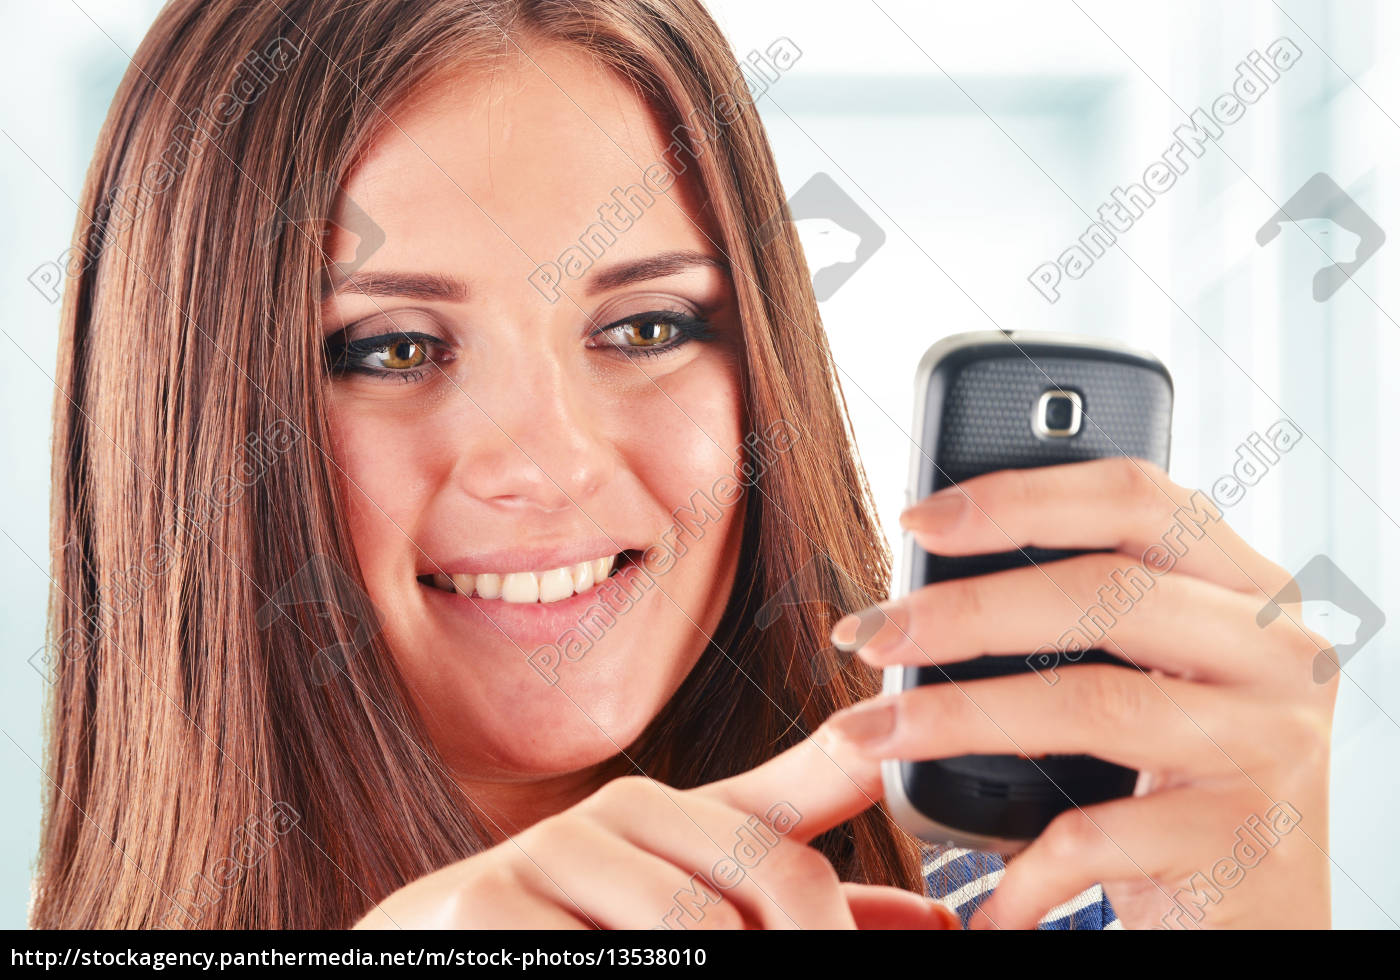 young, woman, using, smartphone, isolated, on - 13538010